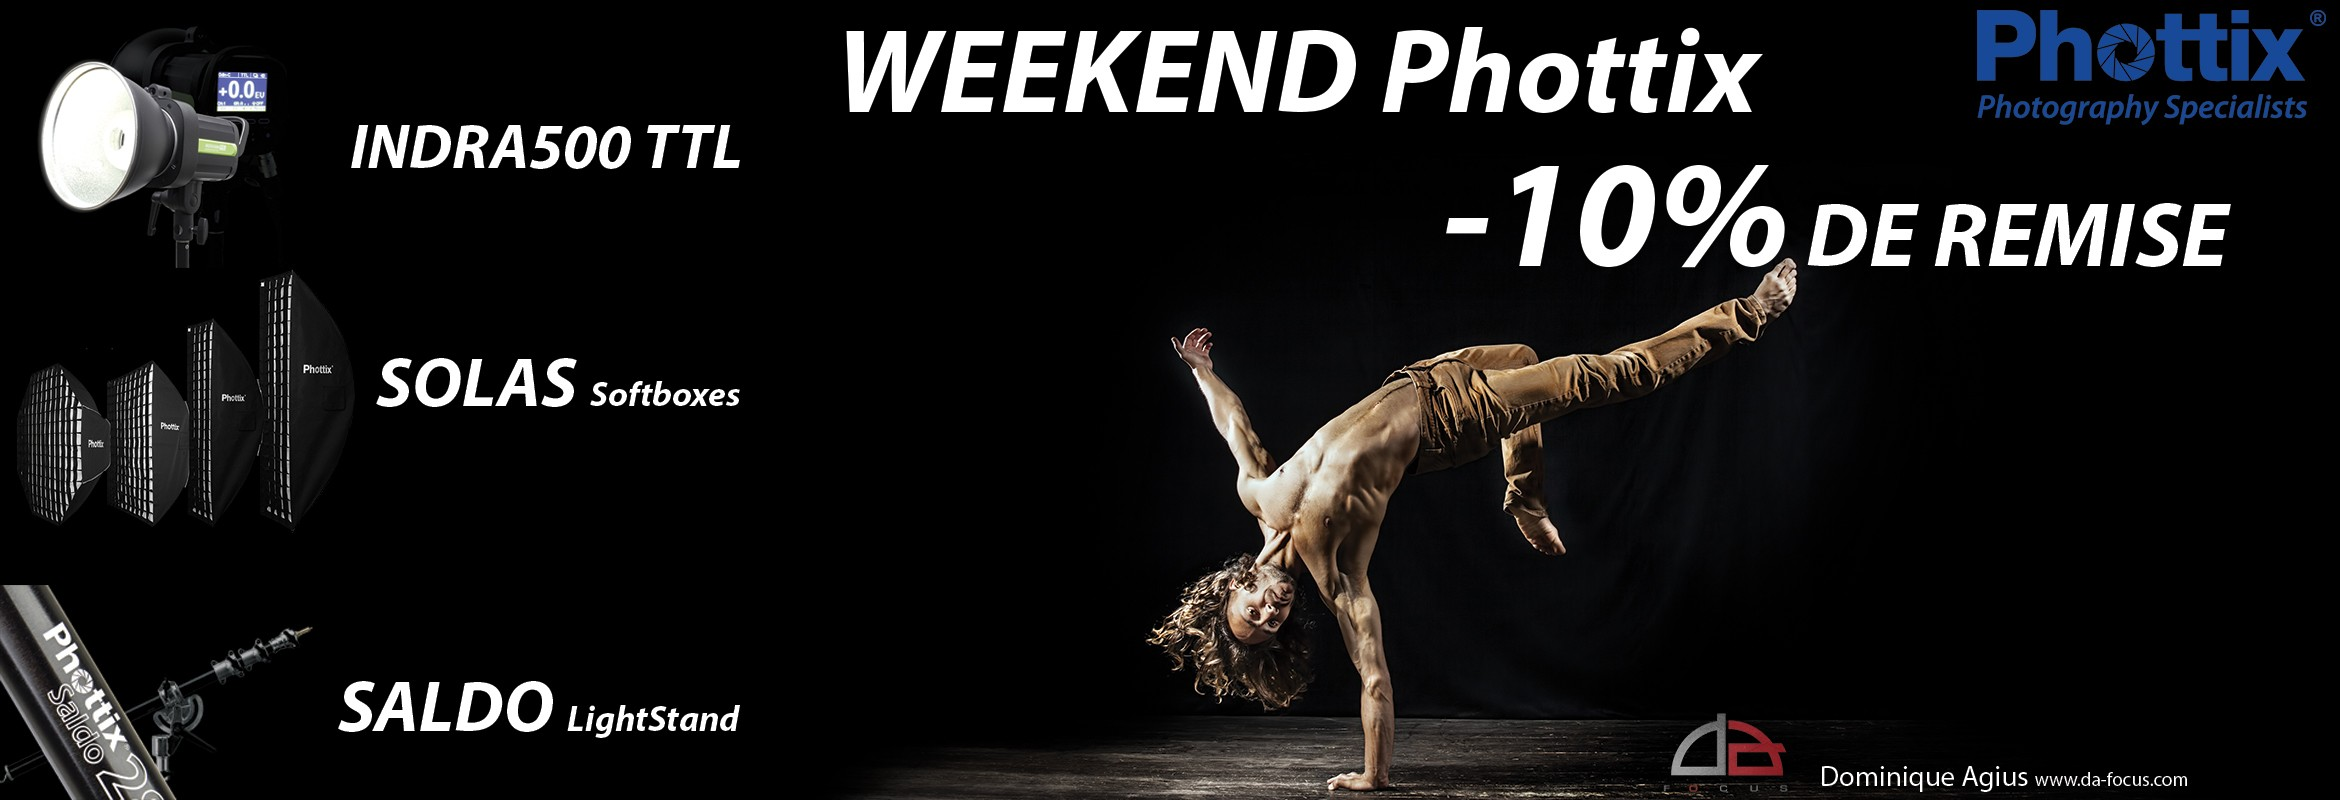 Promo Week-End Phottix Geek-Trend.com